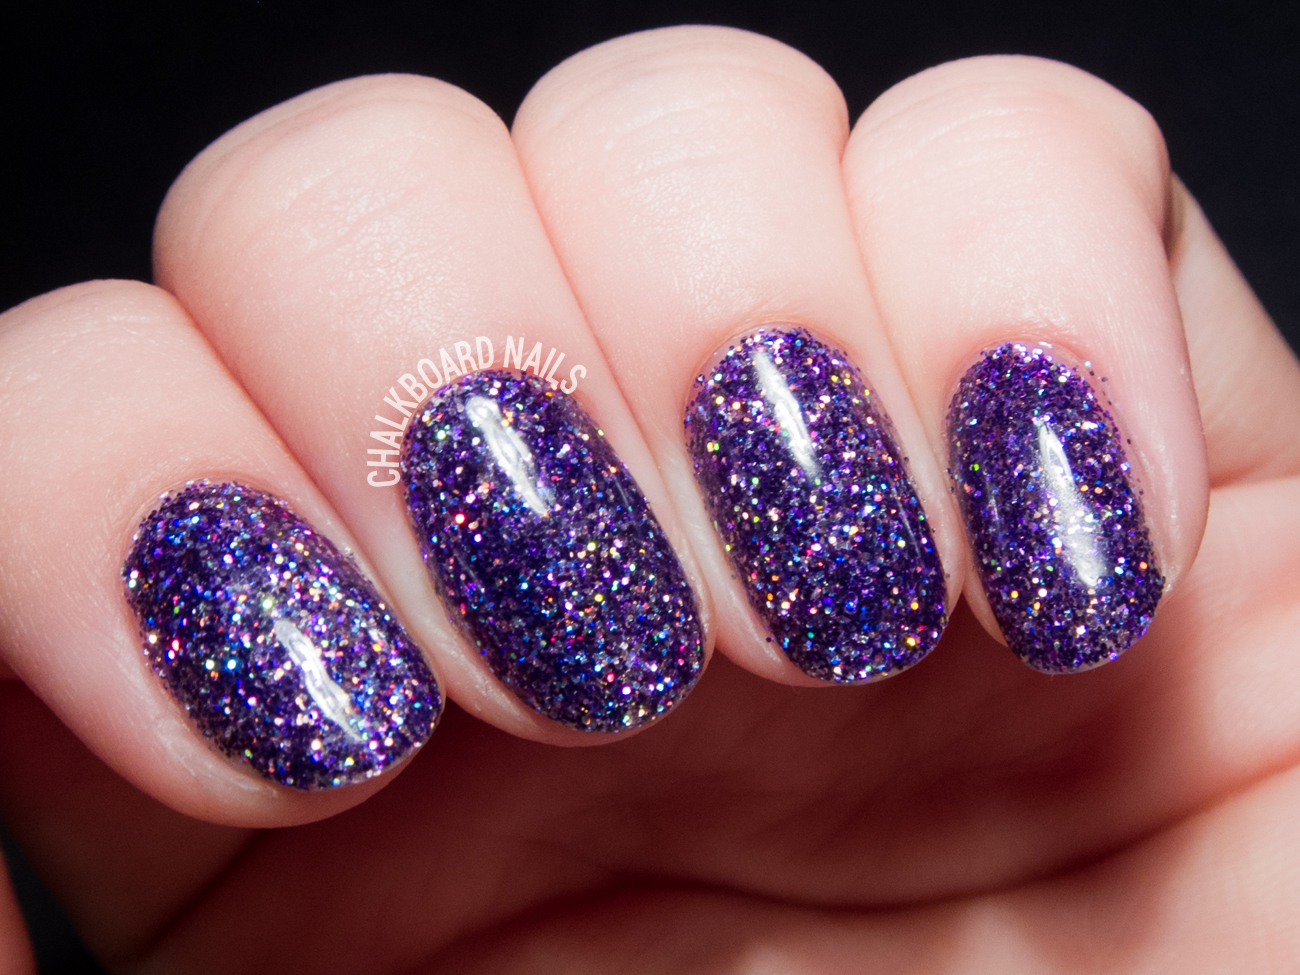 Purple Rockstar Gel Nails by @chalkboardnails